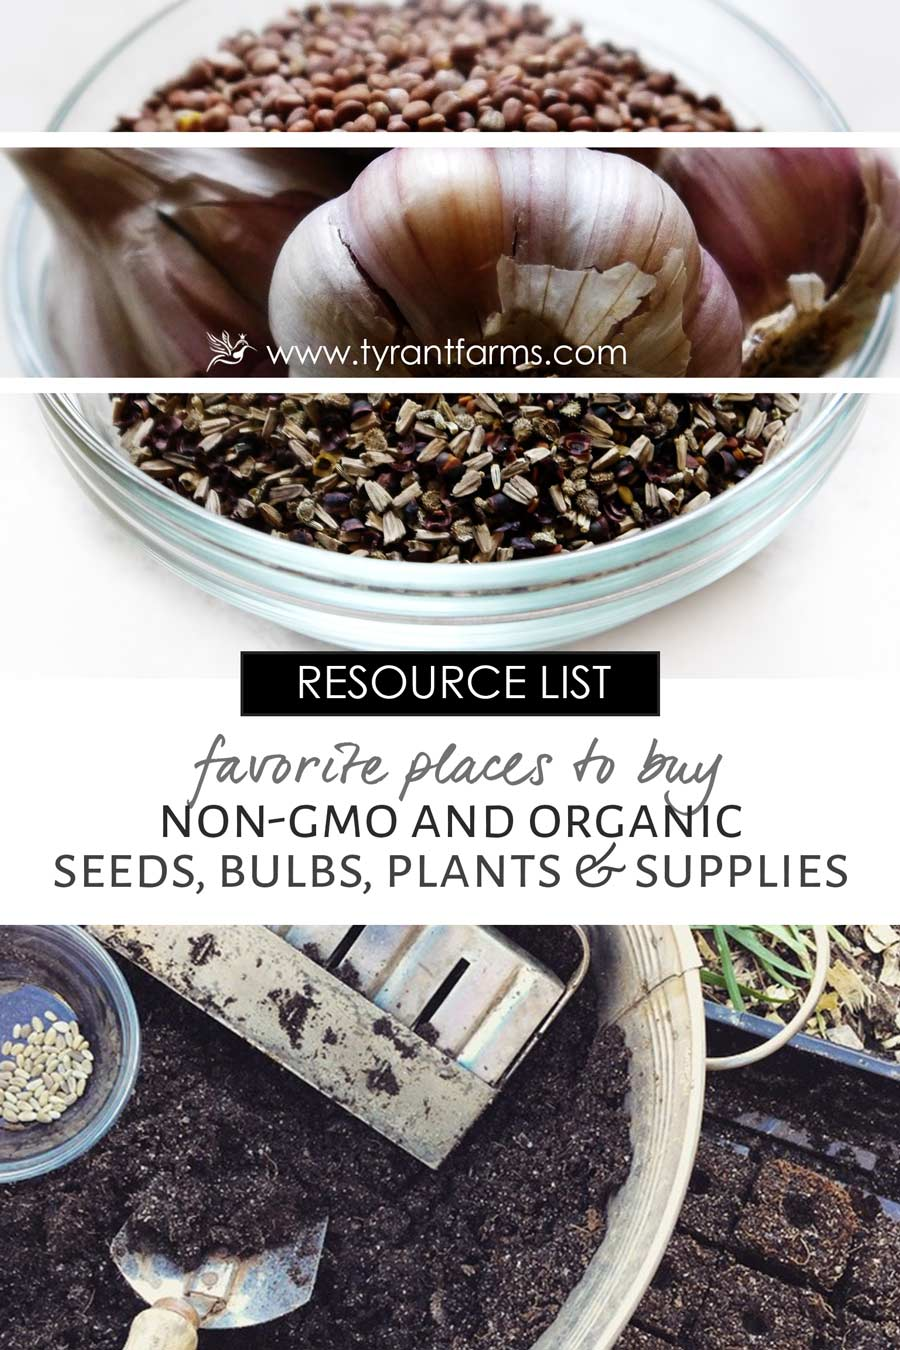 RESOURCES: The awesome list - Where to buy Organic and Non-GMO seeds, bulbs, plants and supplies for your garden. - www.tyrantfarms.com